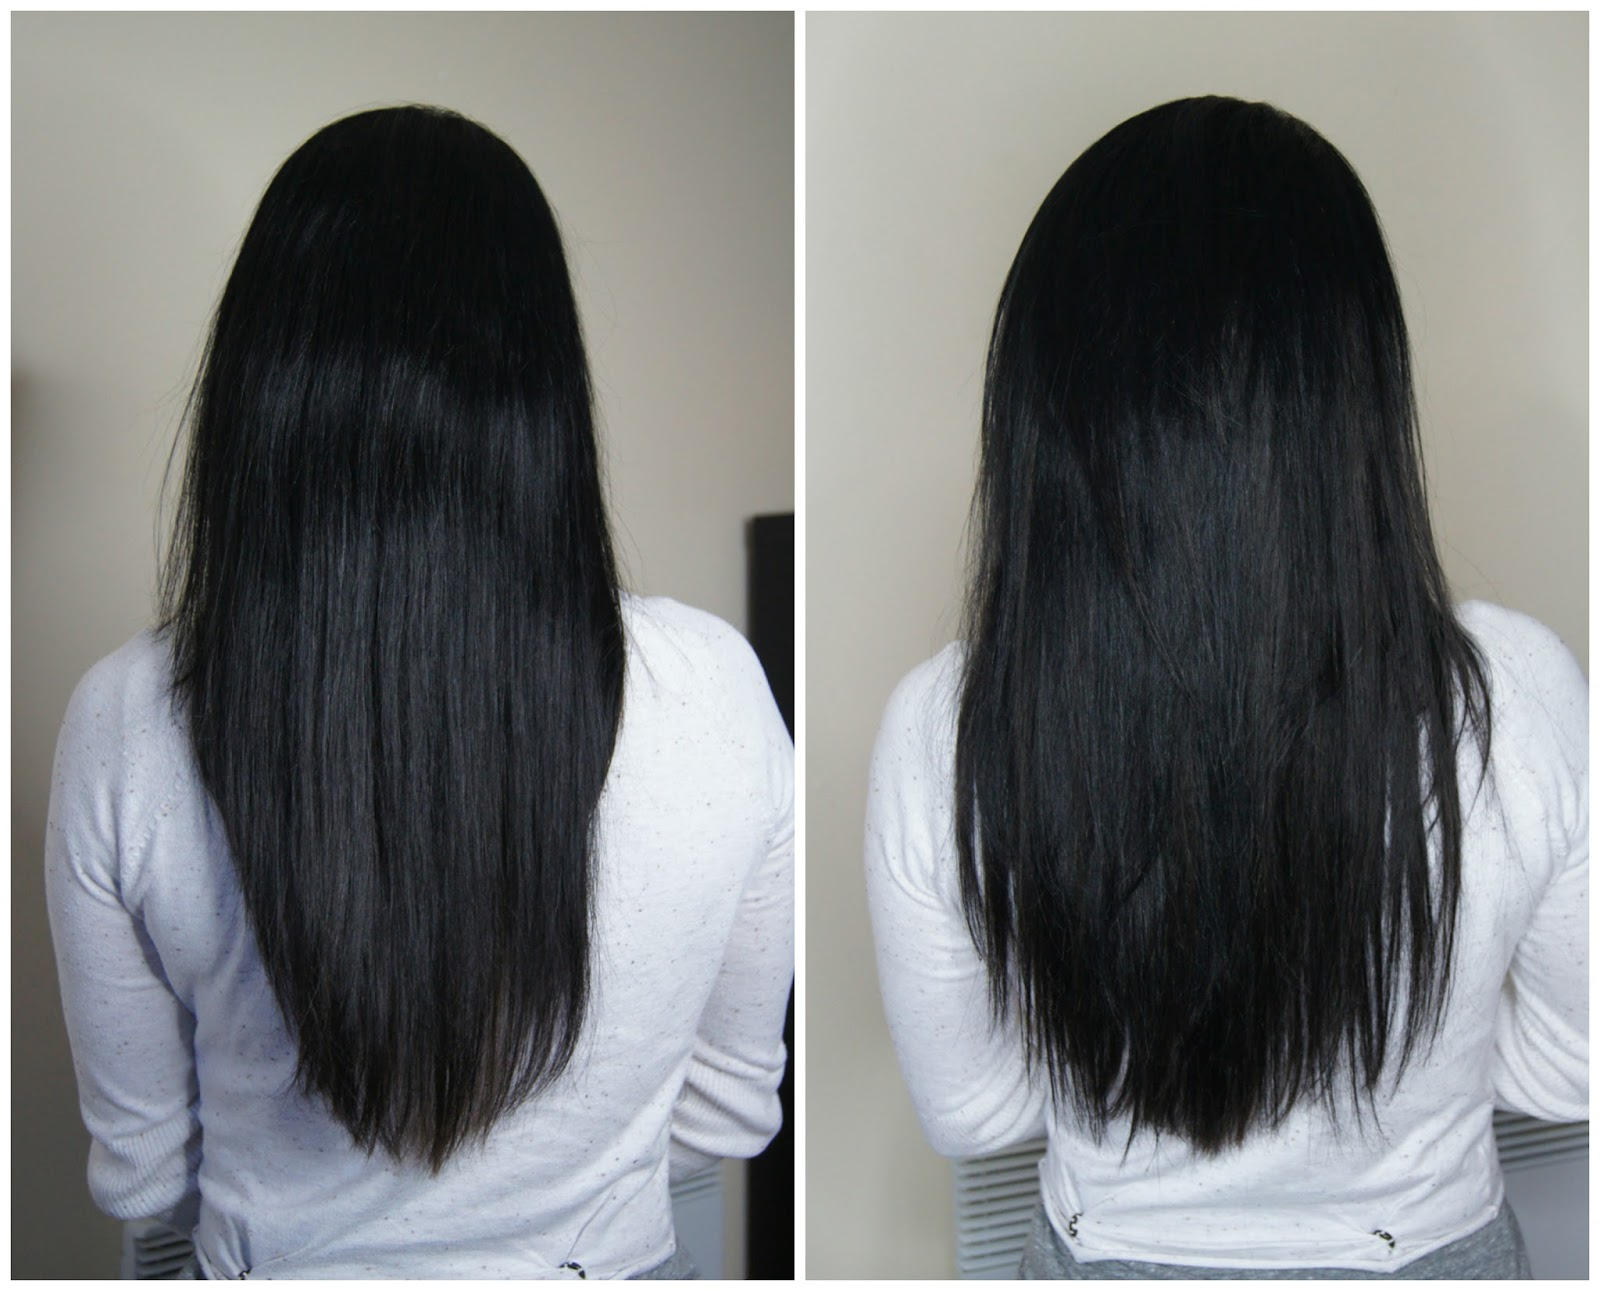 irresistible me silky touch clip-in extensions review before after photos